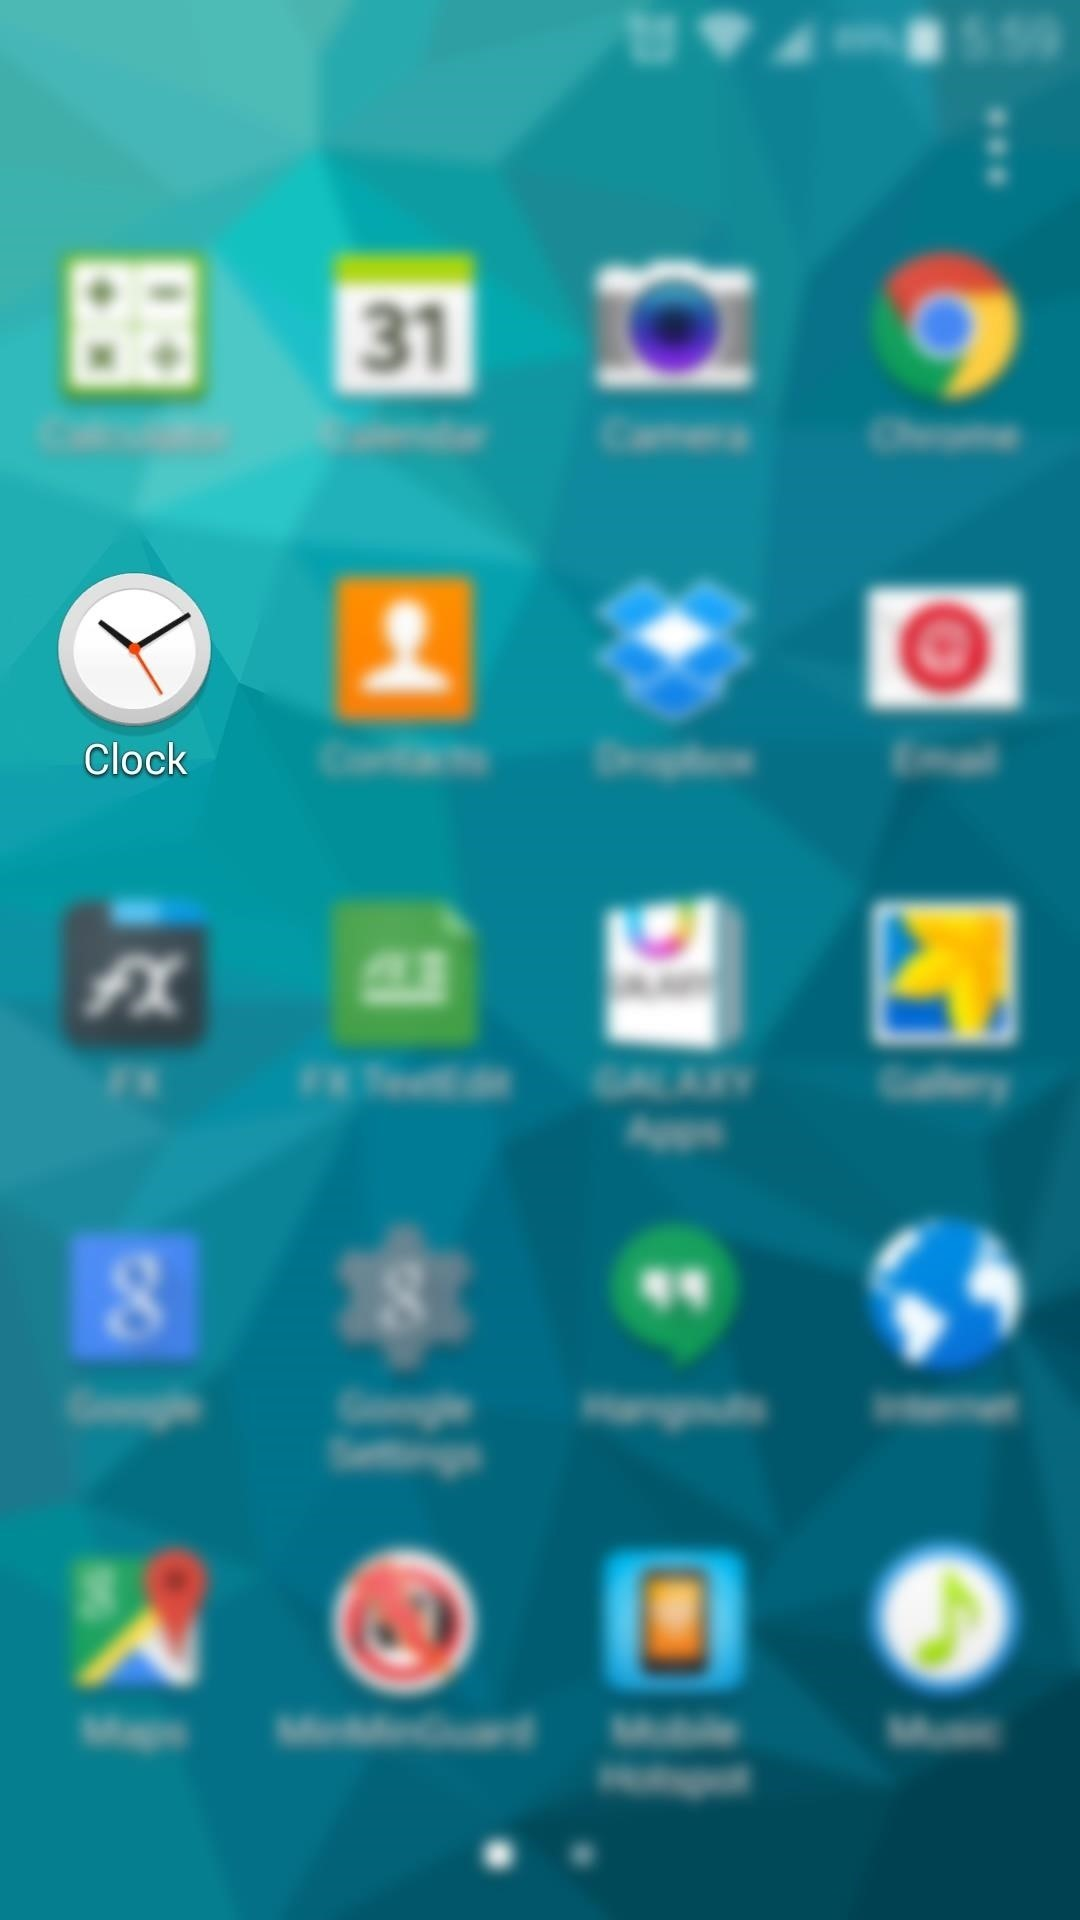 How to Make Android's Clock App Open Directly to the Alarm Tab